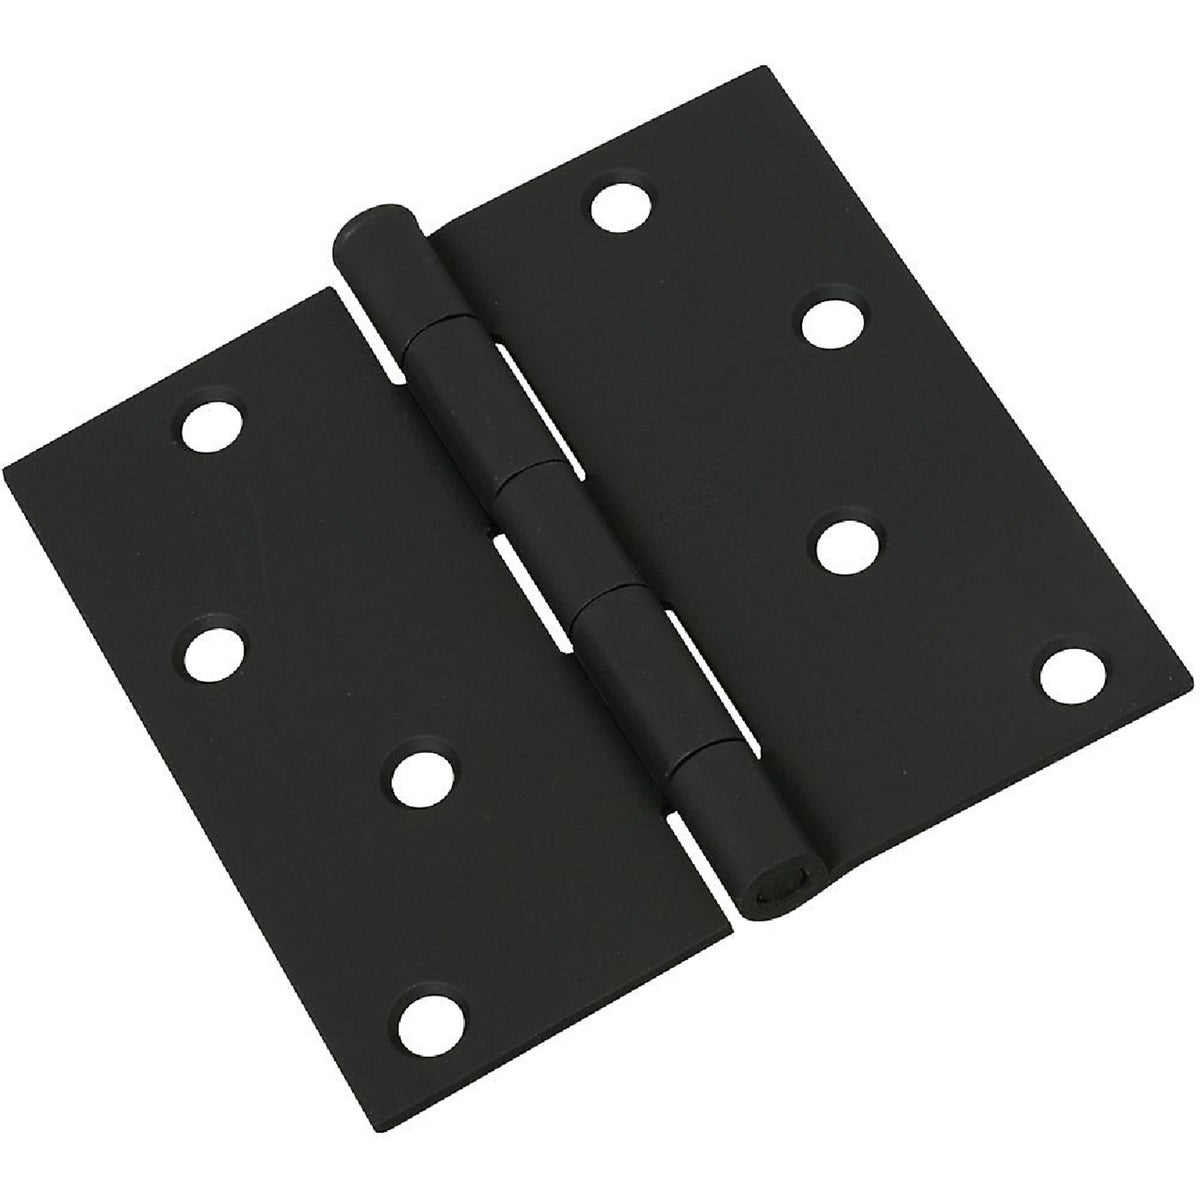 4X4 BLK DOOR HINGE - N241208 by National Mfg Co